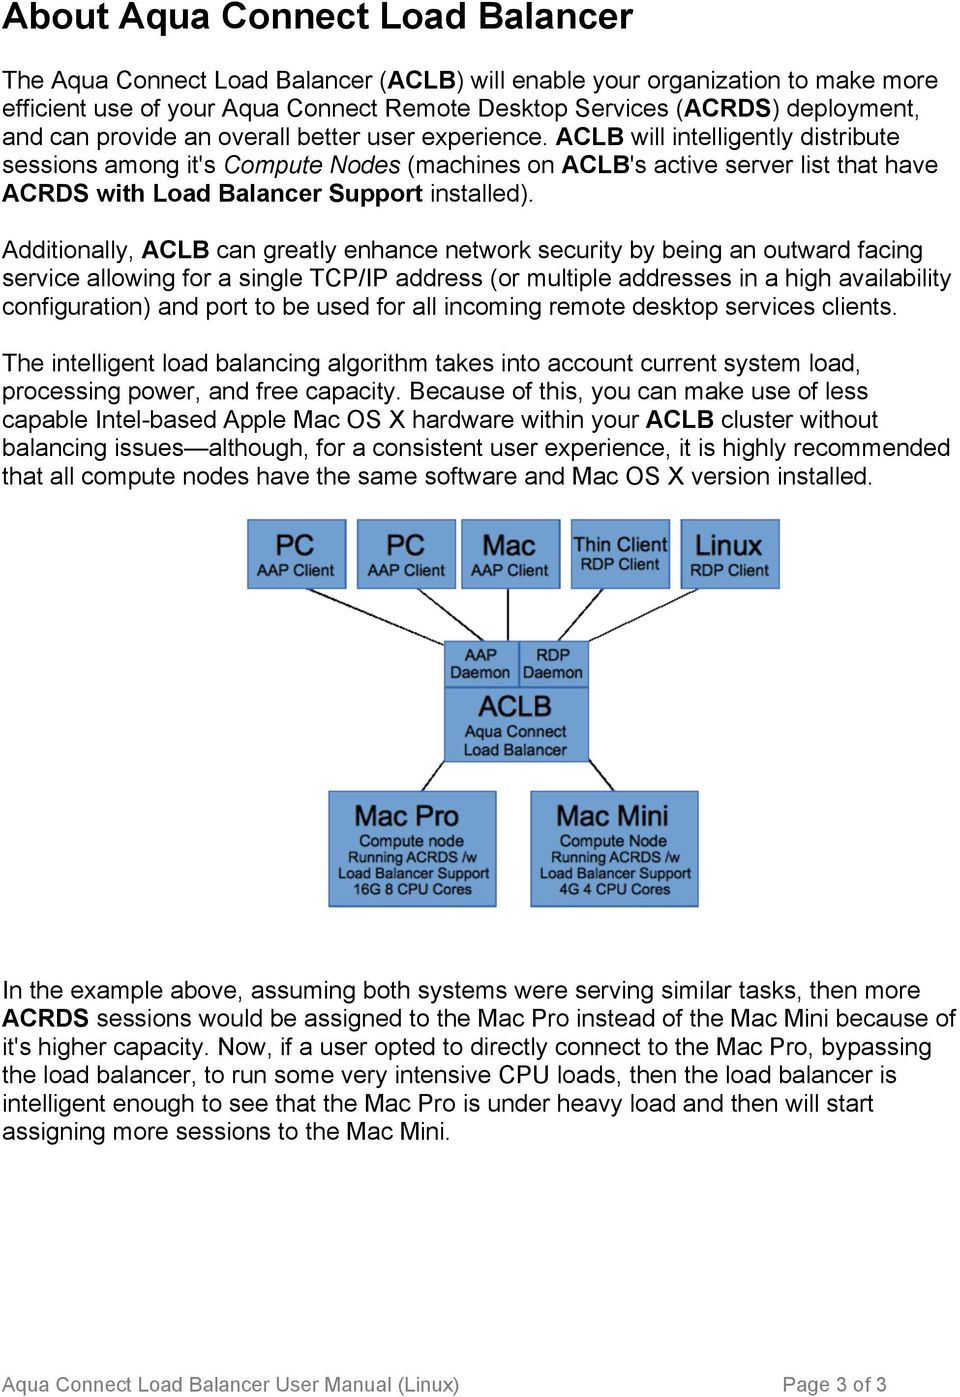 ACLB will intelligently distribute sessions among it's Compute Nodes (machines on ACLB's active server list that have ACRDS with Load Balancer Support installed).